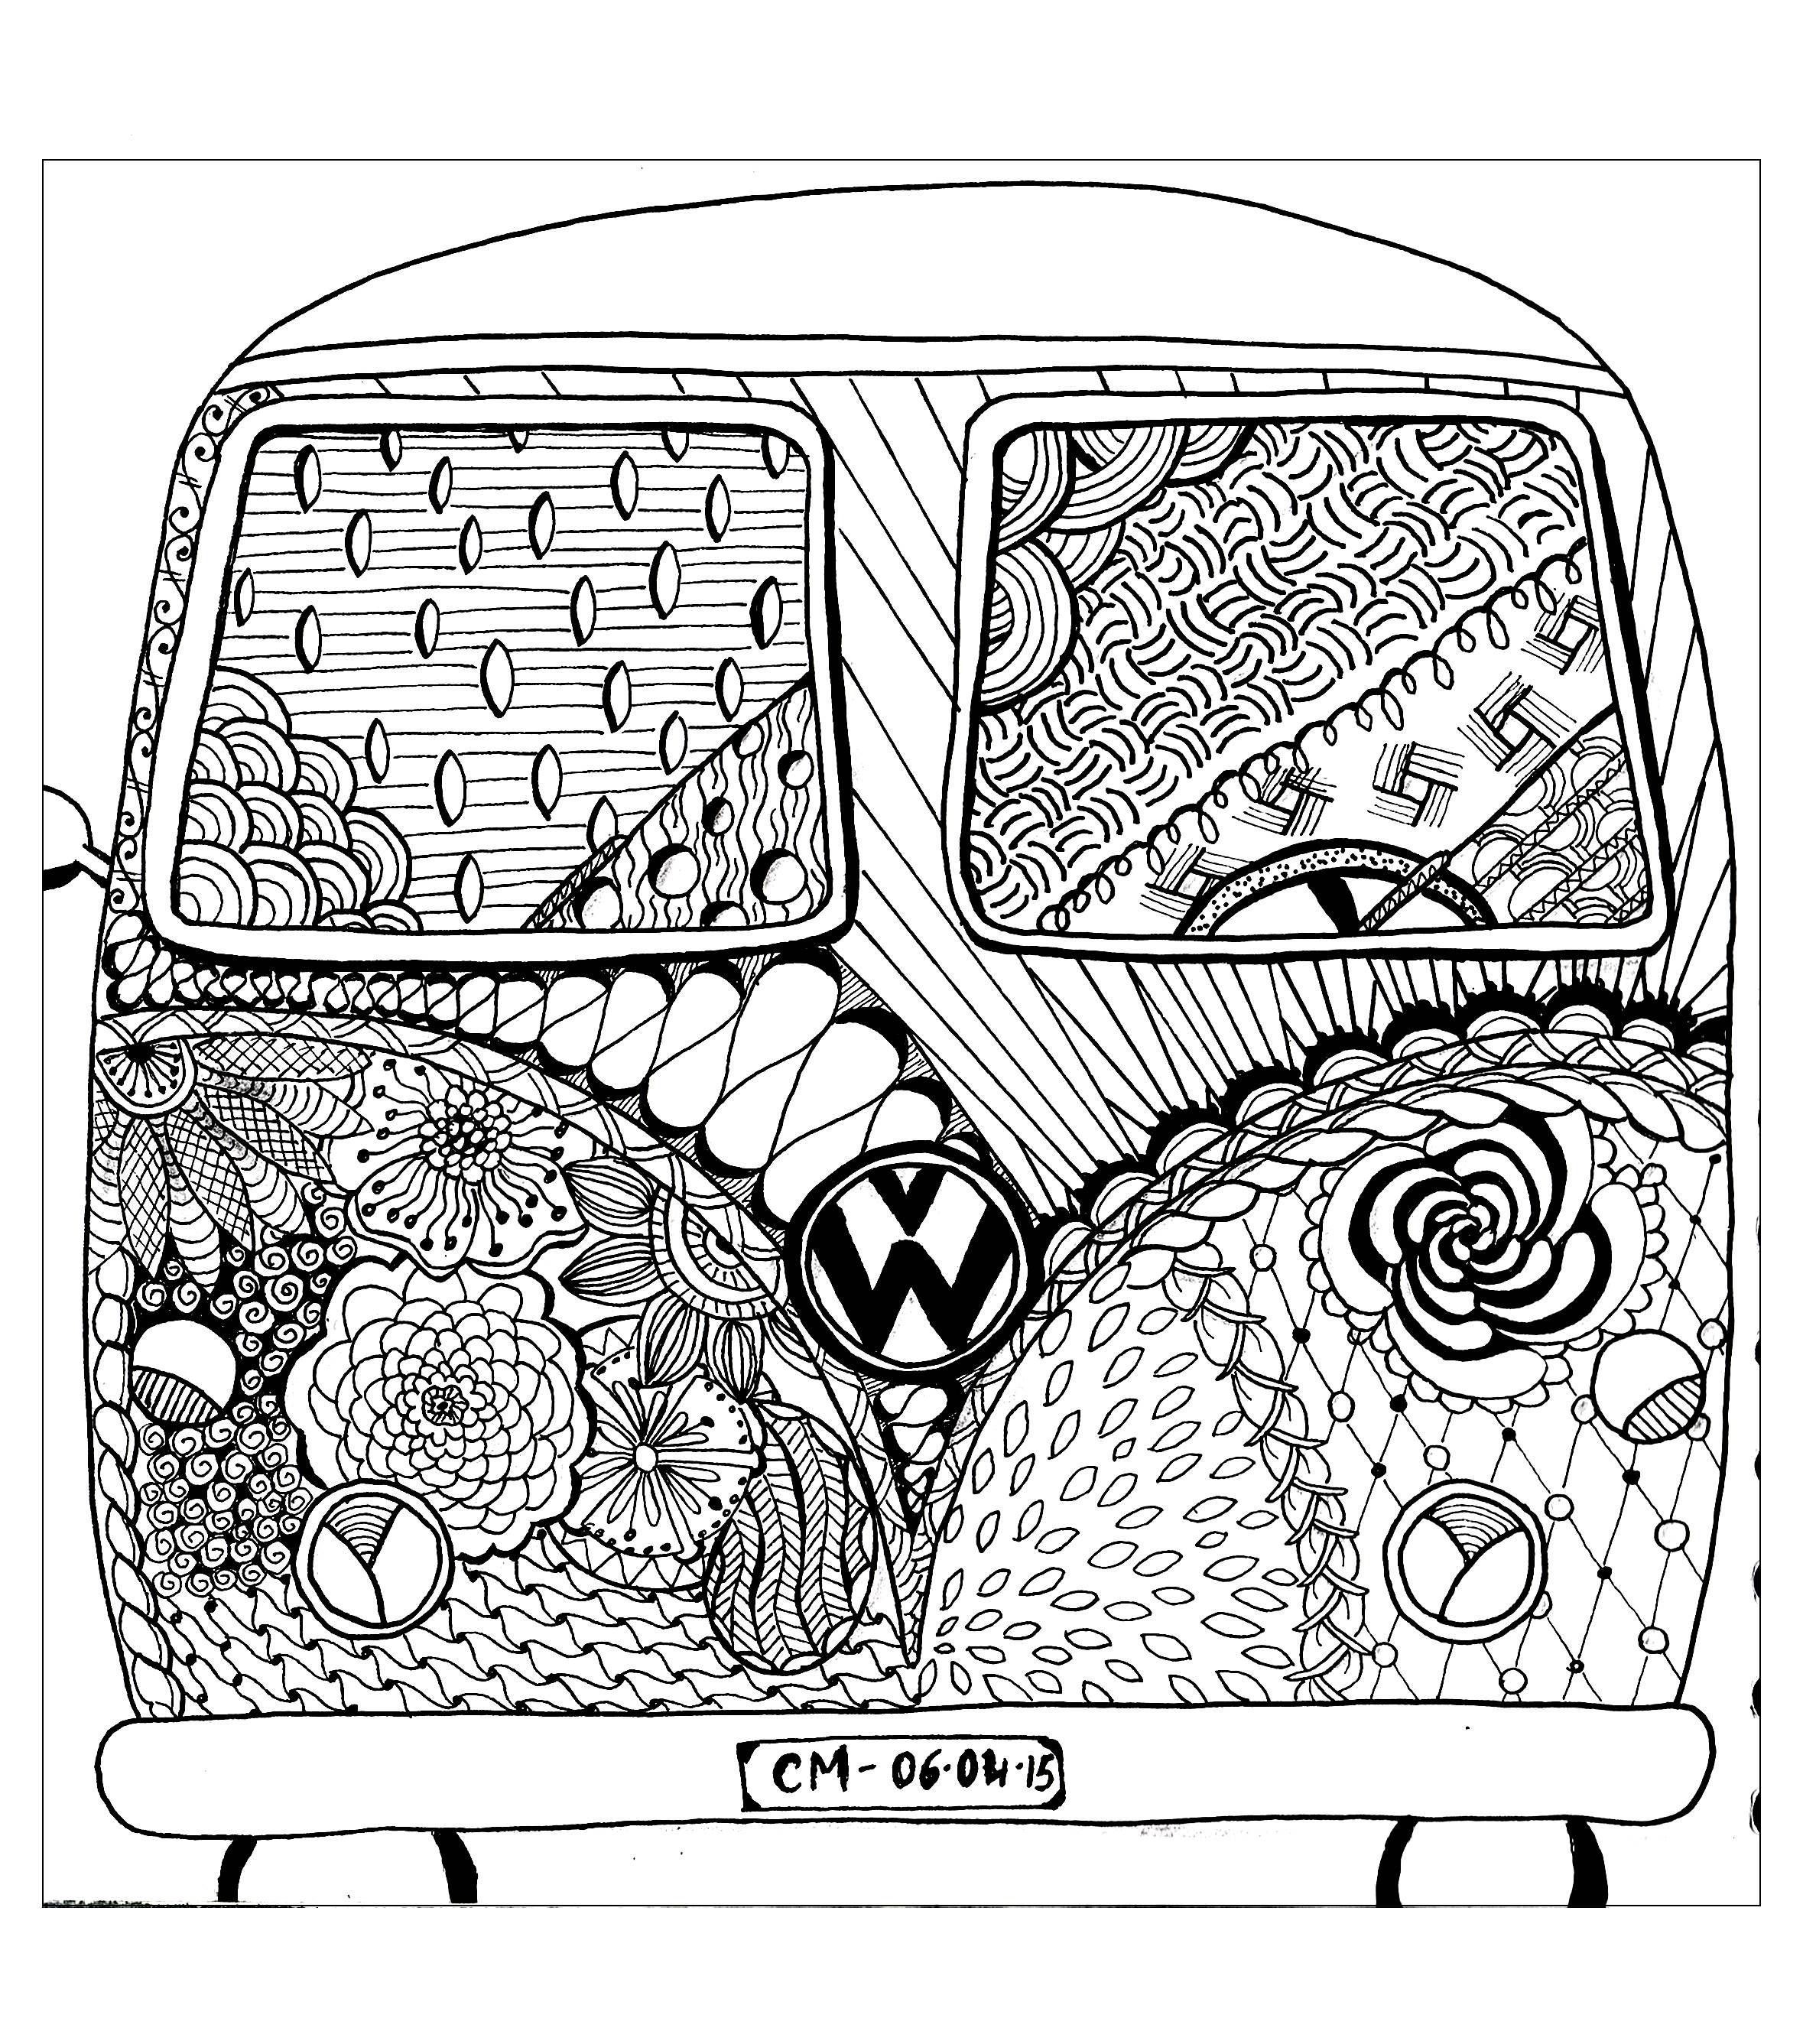 Free printable zentangle coloring pages for adults - Free Coloring Page Coloring Zentangle By Cathym 8 Hippie Camper